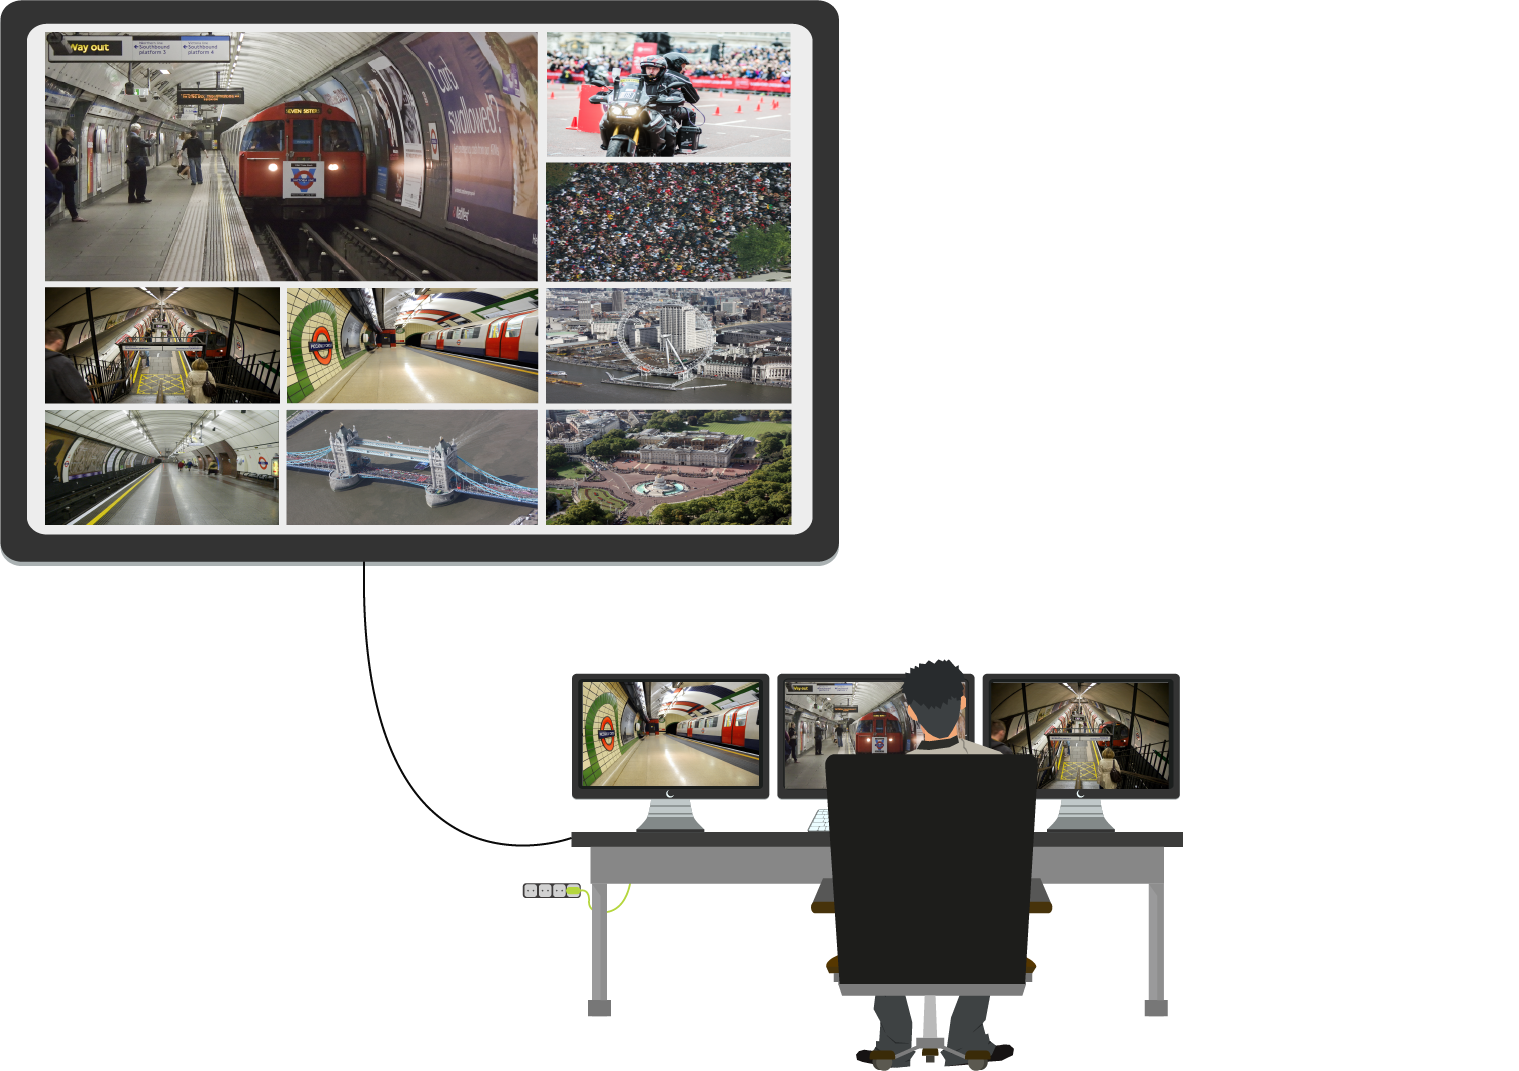 Command and control Multi-view